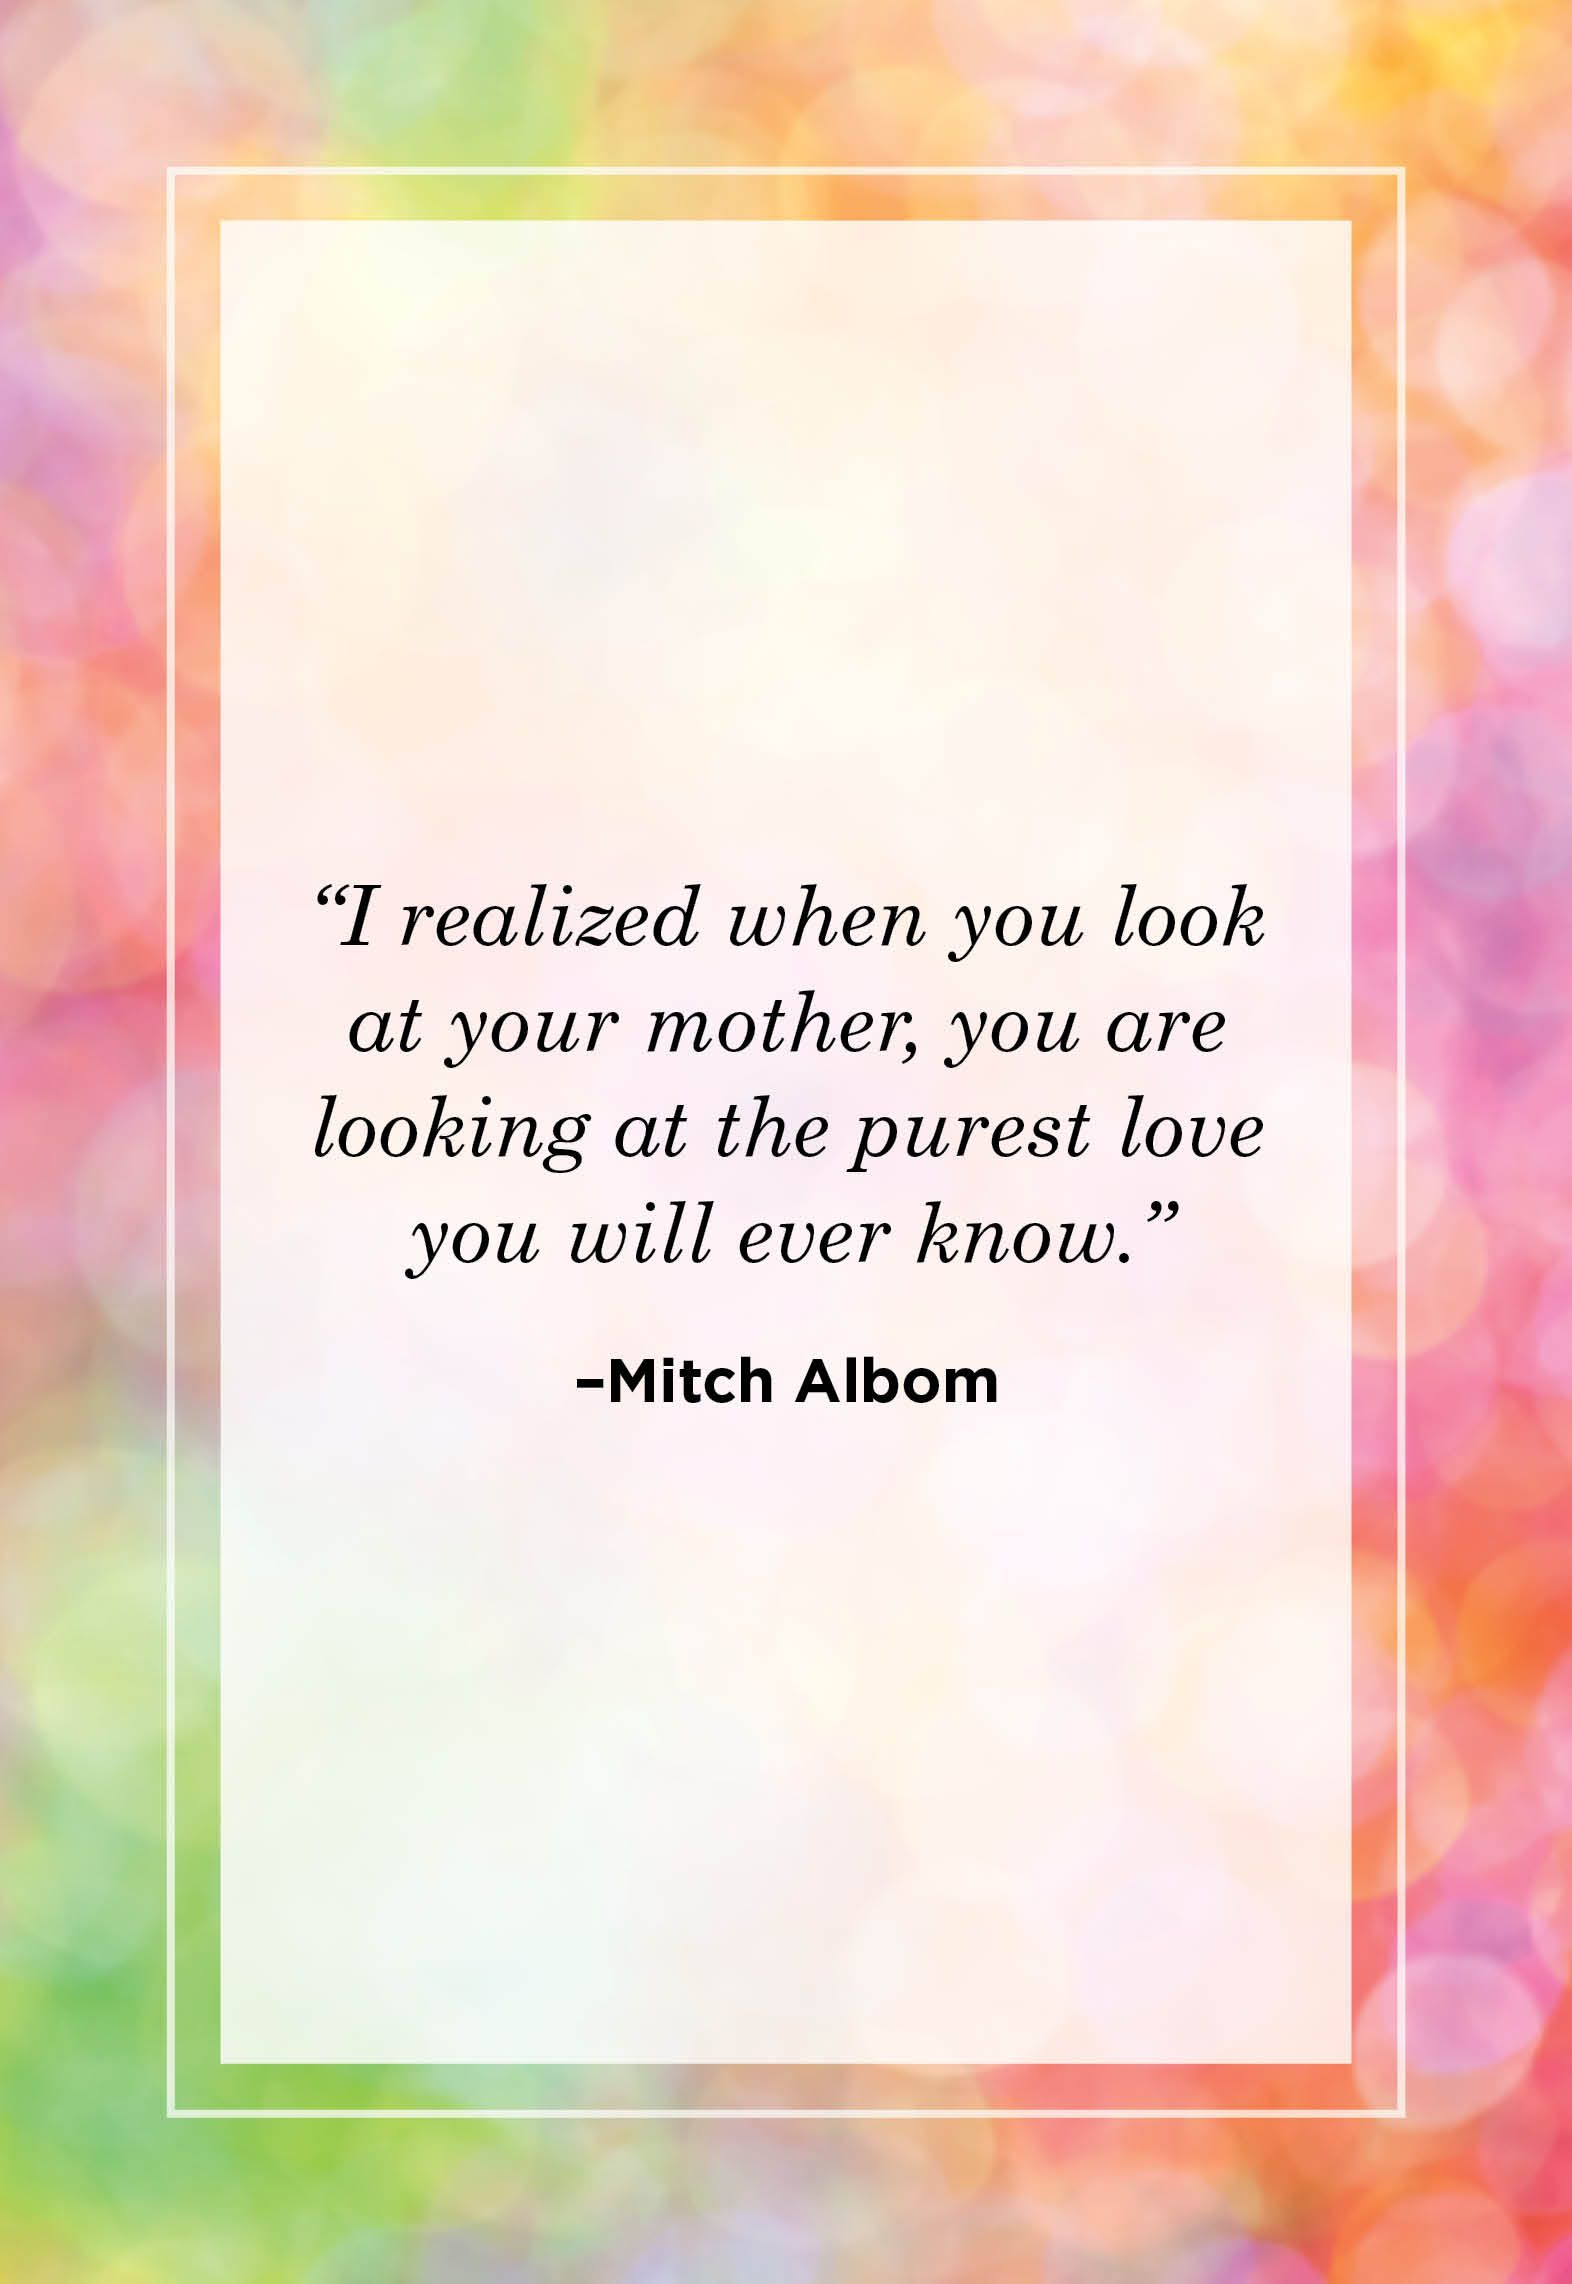 Wondrous 20 Birthday Quotes To Celebrate Mom Messages From Daughter And Son Funny Birthday Cards Online Elaedamsfinfo